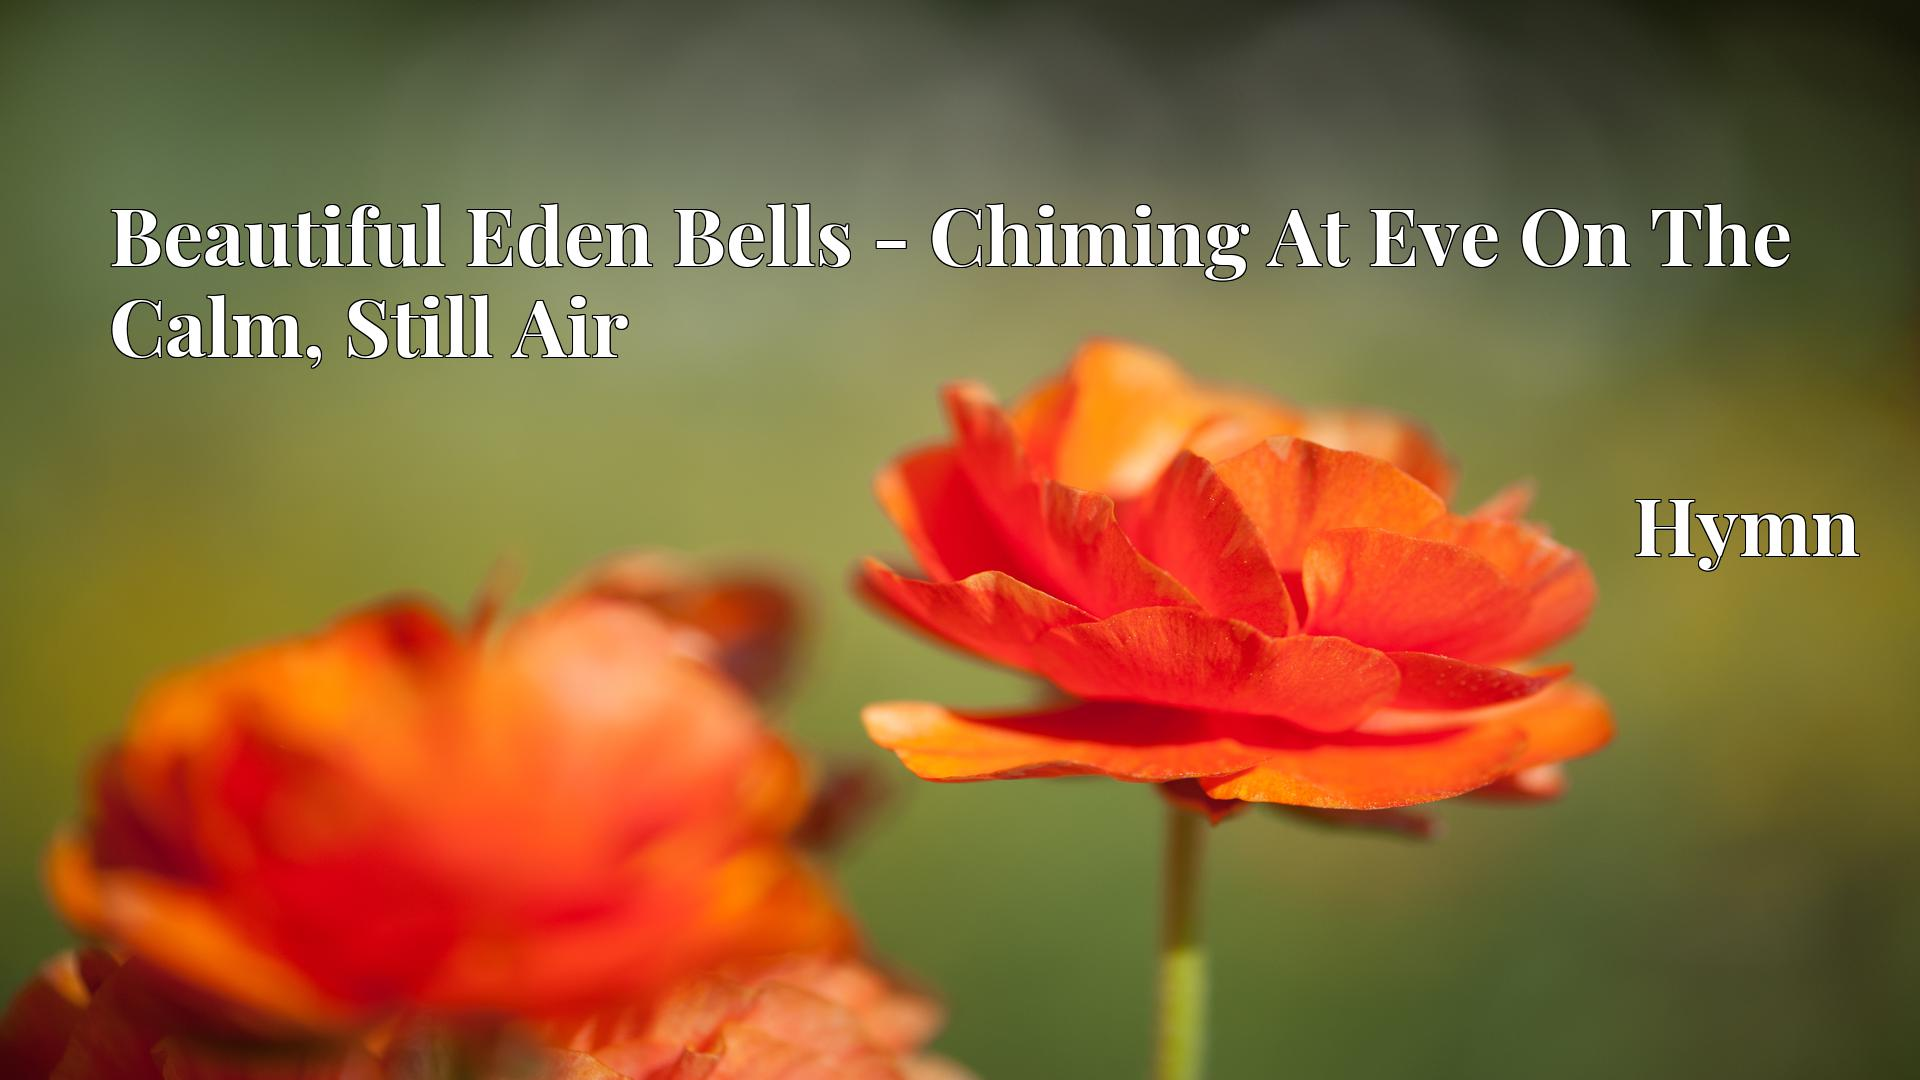 Beautiful Eden Bells - Chiming At Eve On The Calm, Still Air - Hymn